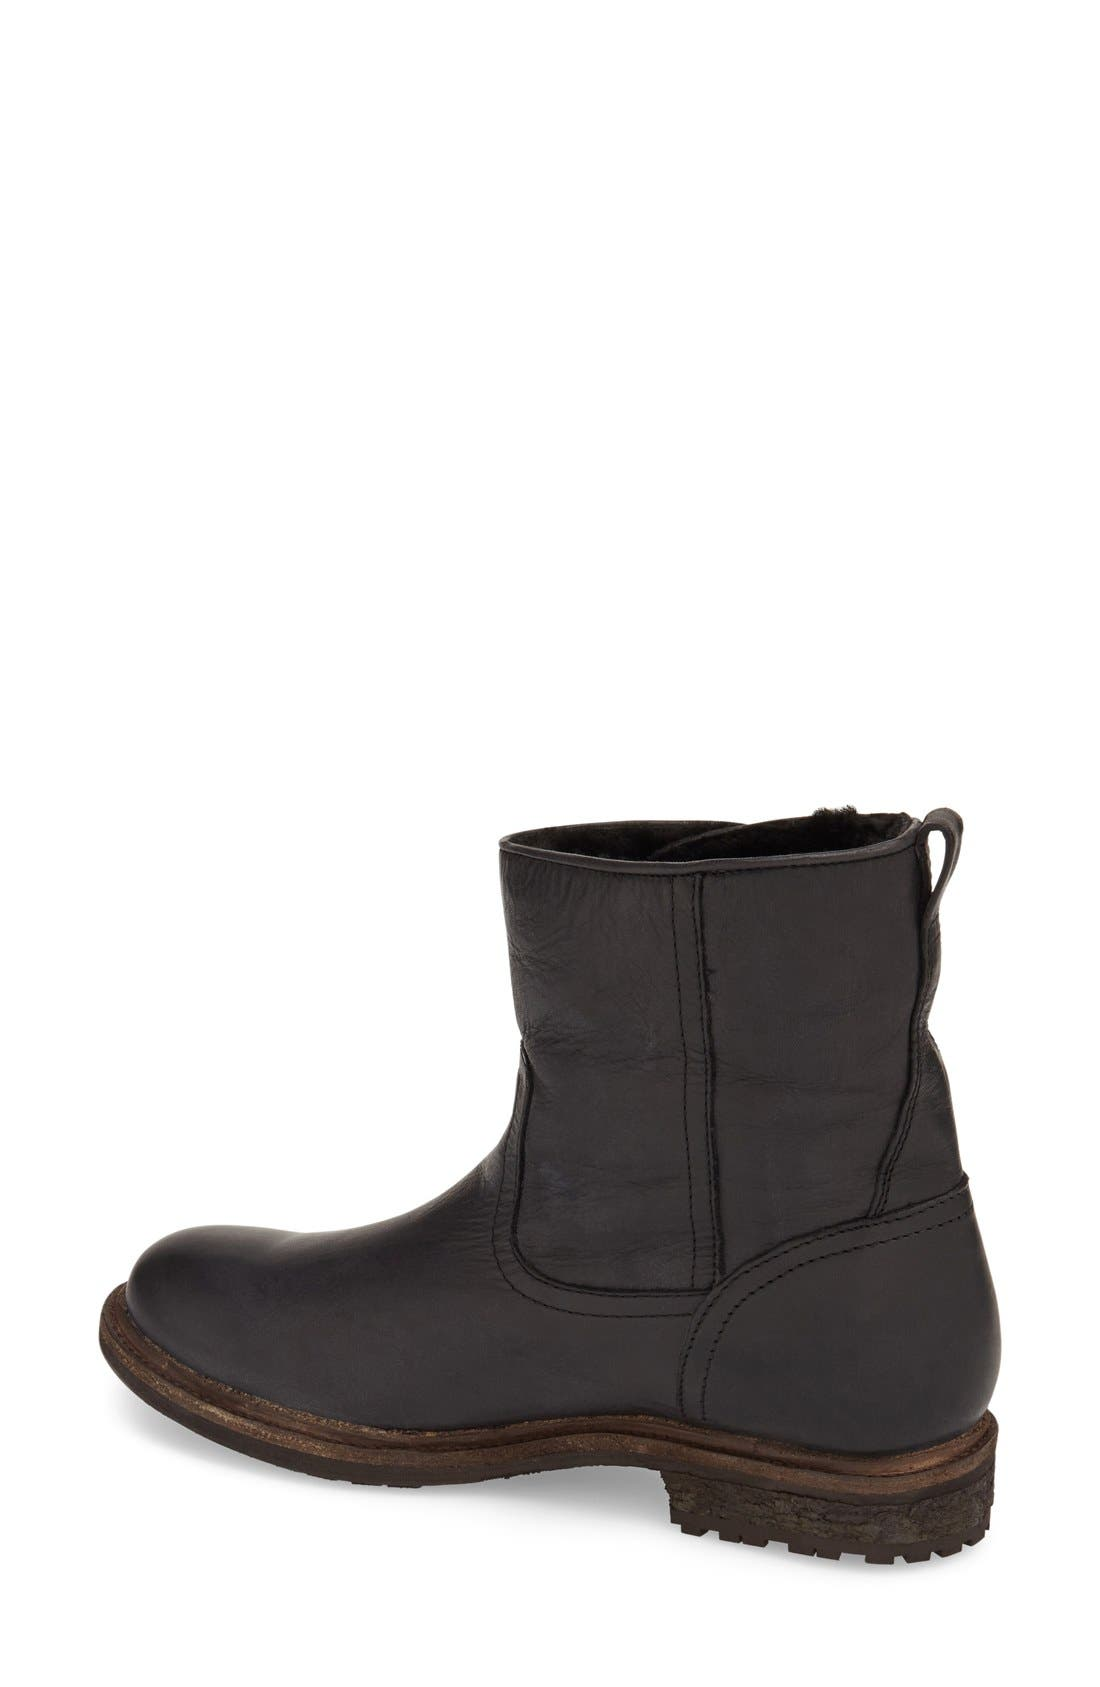 'Mara' Button Genuine Shearling Lined Short Boot,                             Alternate thumbnail 2, color,                             001